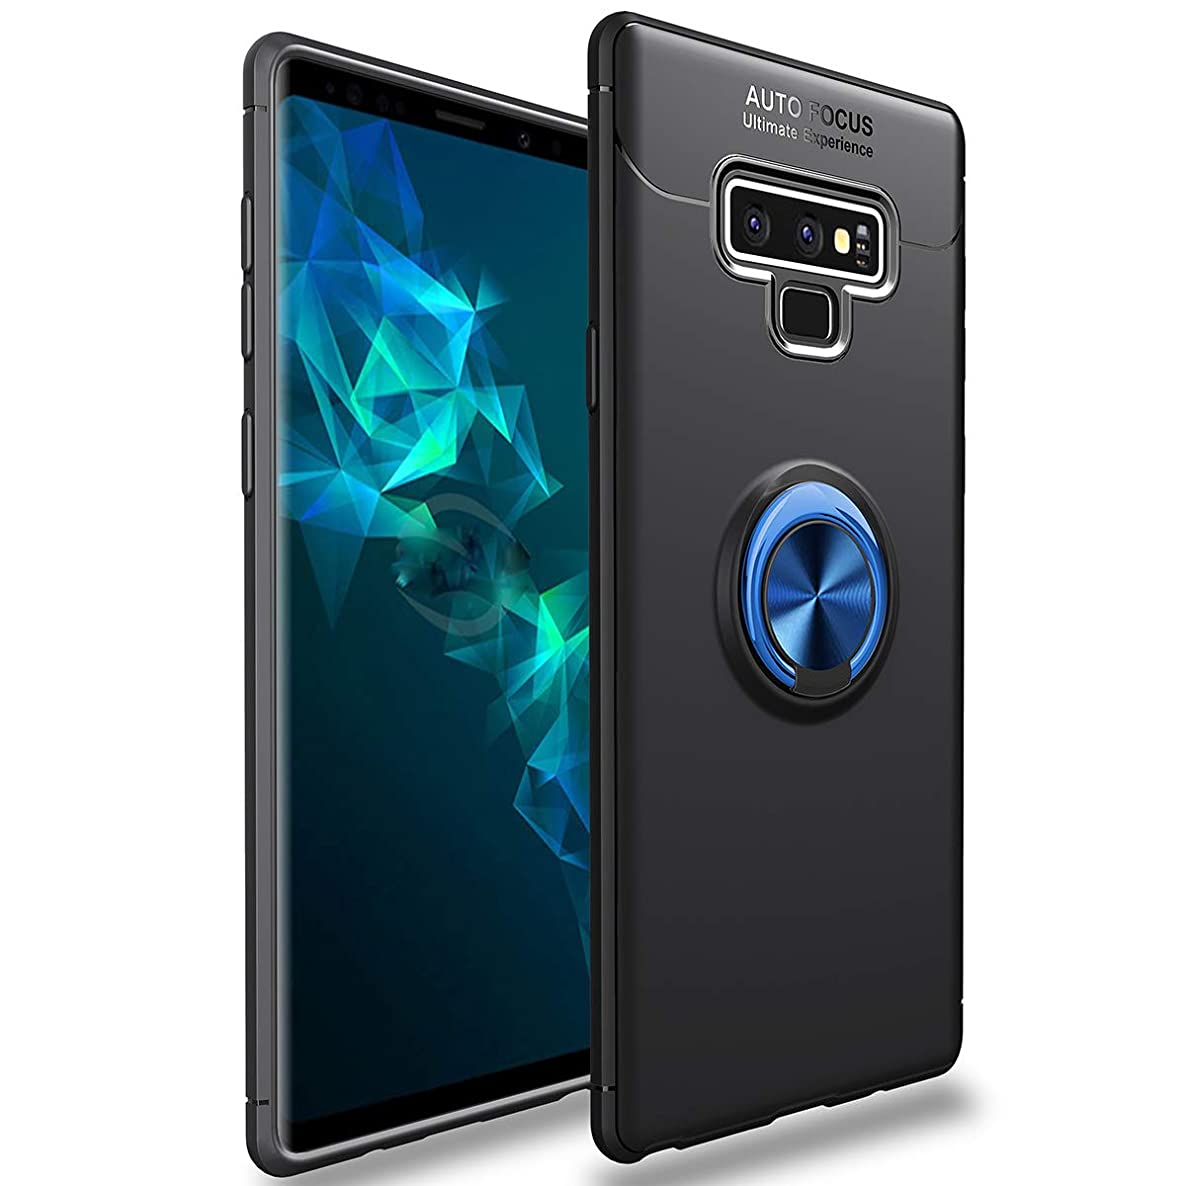 Galaxy Note 9 Case,WATACHE Slim Fit Heavy Duty Soft TPU Case with Metal Finger Ring Grip Holder Kickstand [Support Magnetic Car Mount] for Galaxy Note 9 (Black+Blue Ring)